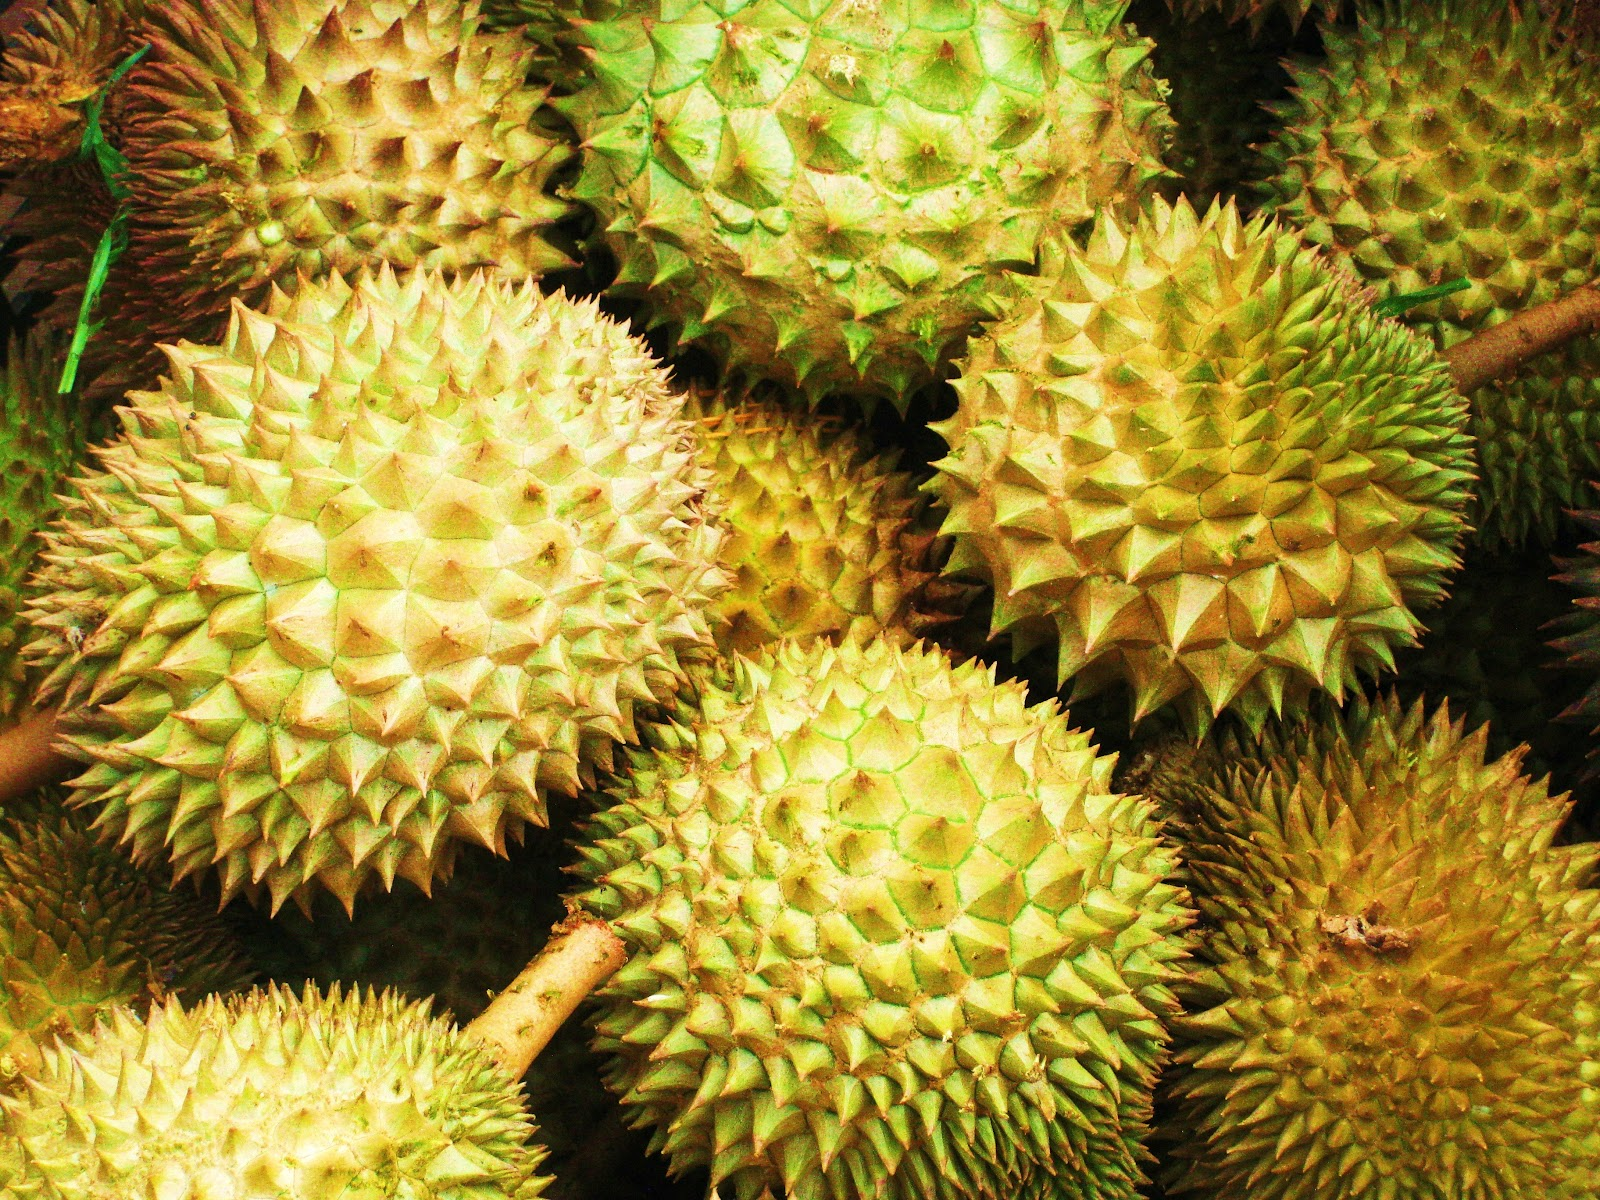 How to pick and eat durian fruit the washington post - Durian Tasting